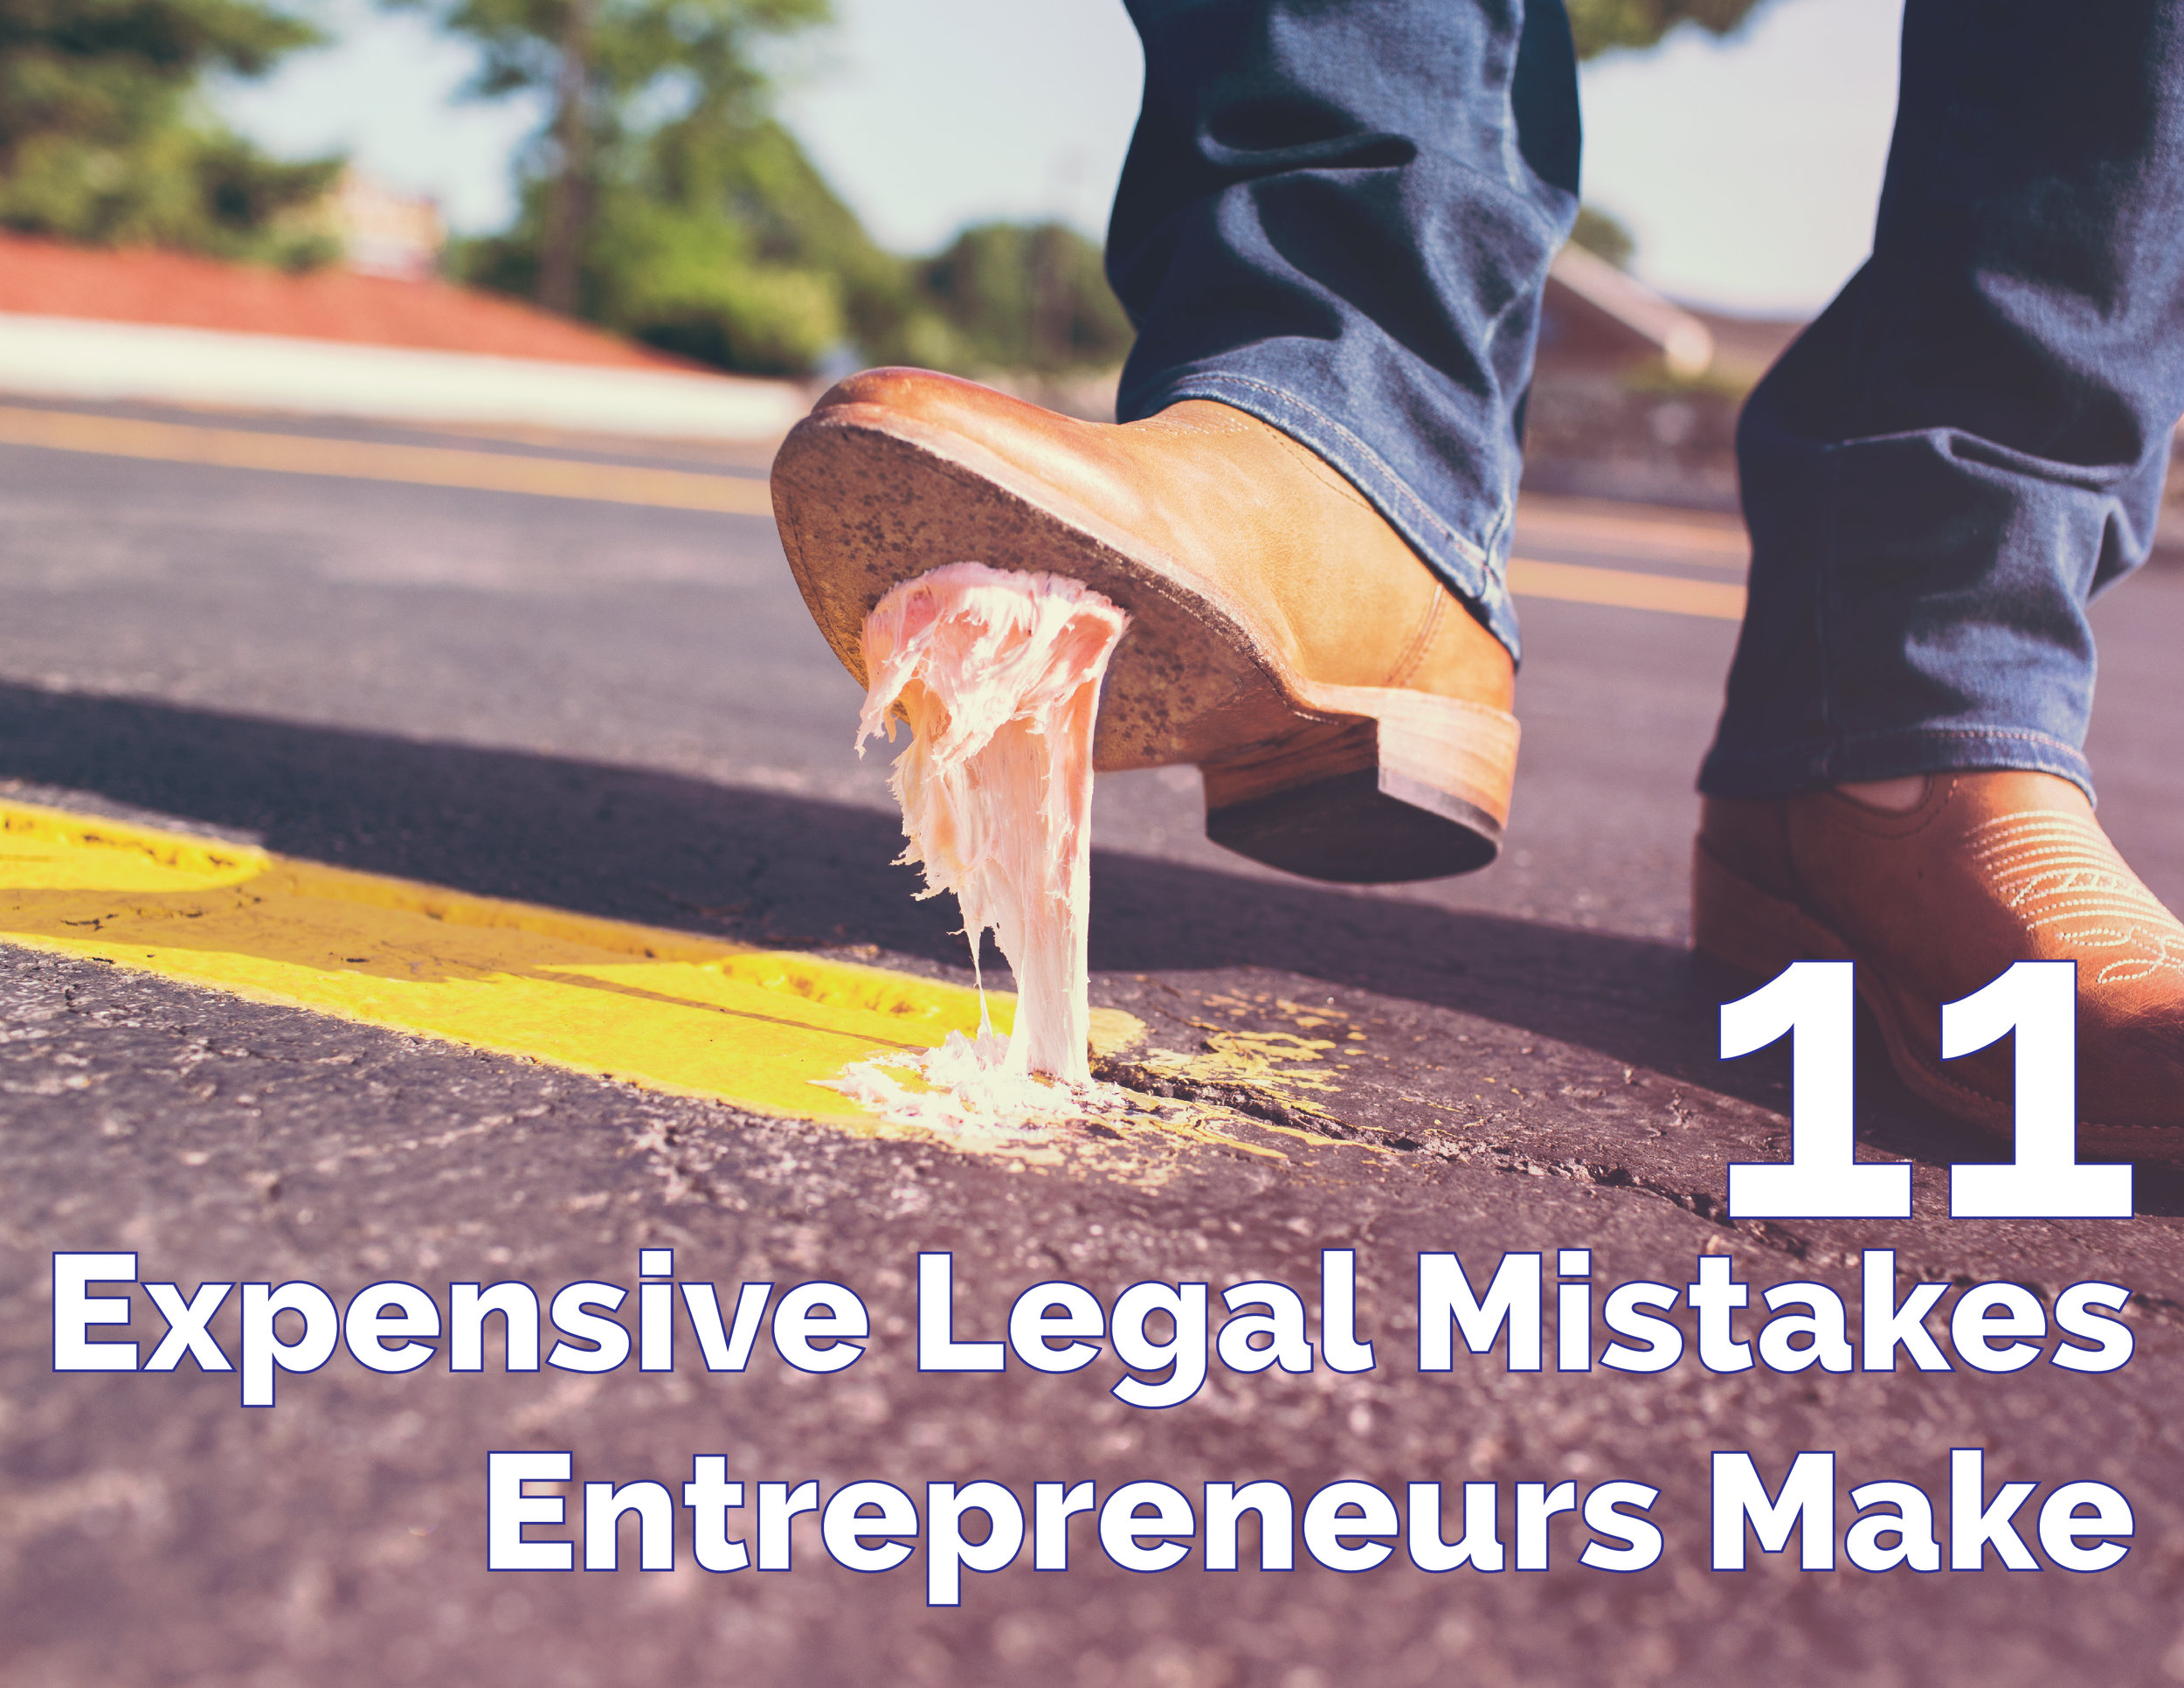 """Get your free copy of """"11 Expensive Legal Mistakes Entrepreneurs Make"""" to find out if you are making any of these easily avoidable mistakes."""